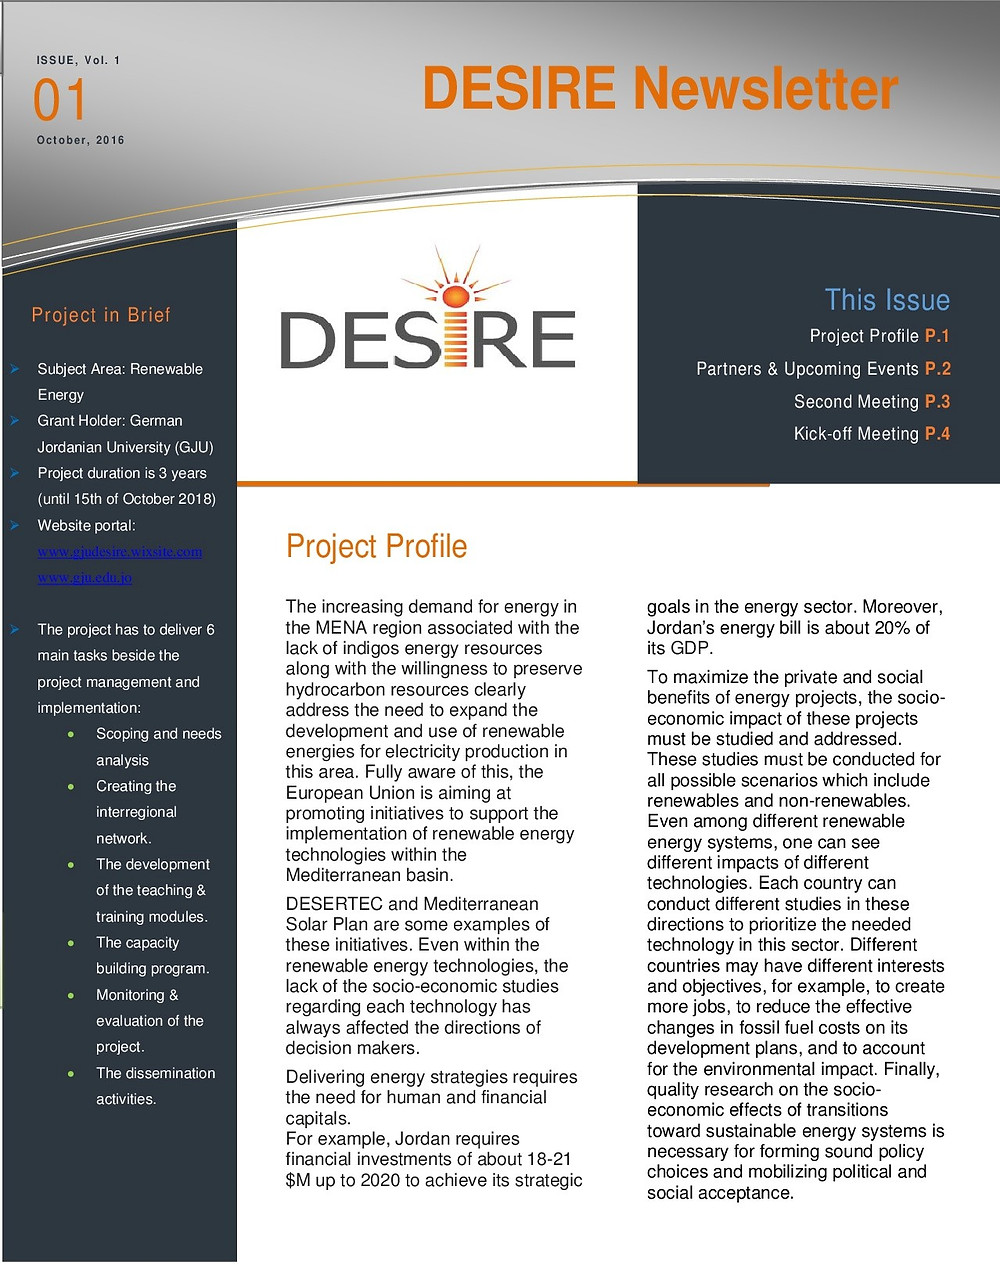 DESIRE Newsletter is available now in the publication tab. We hope you enjoy reading these pieces of our news